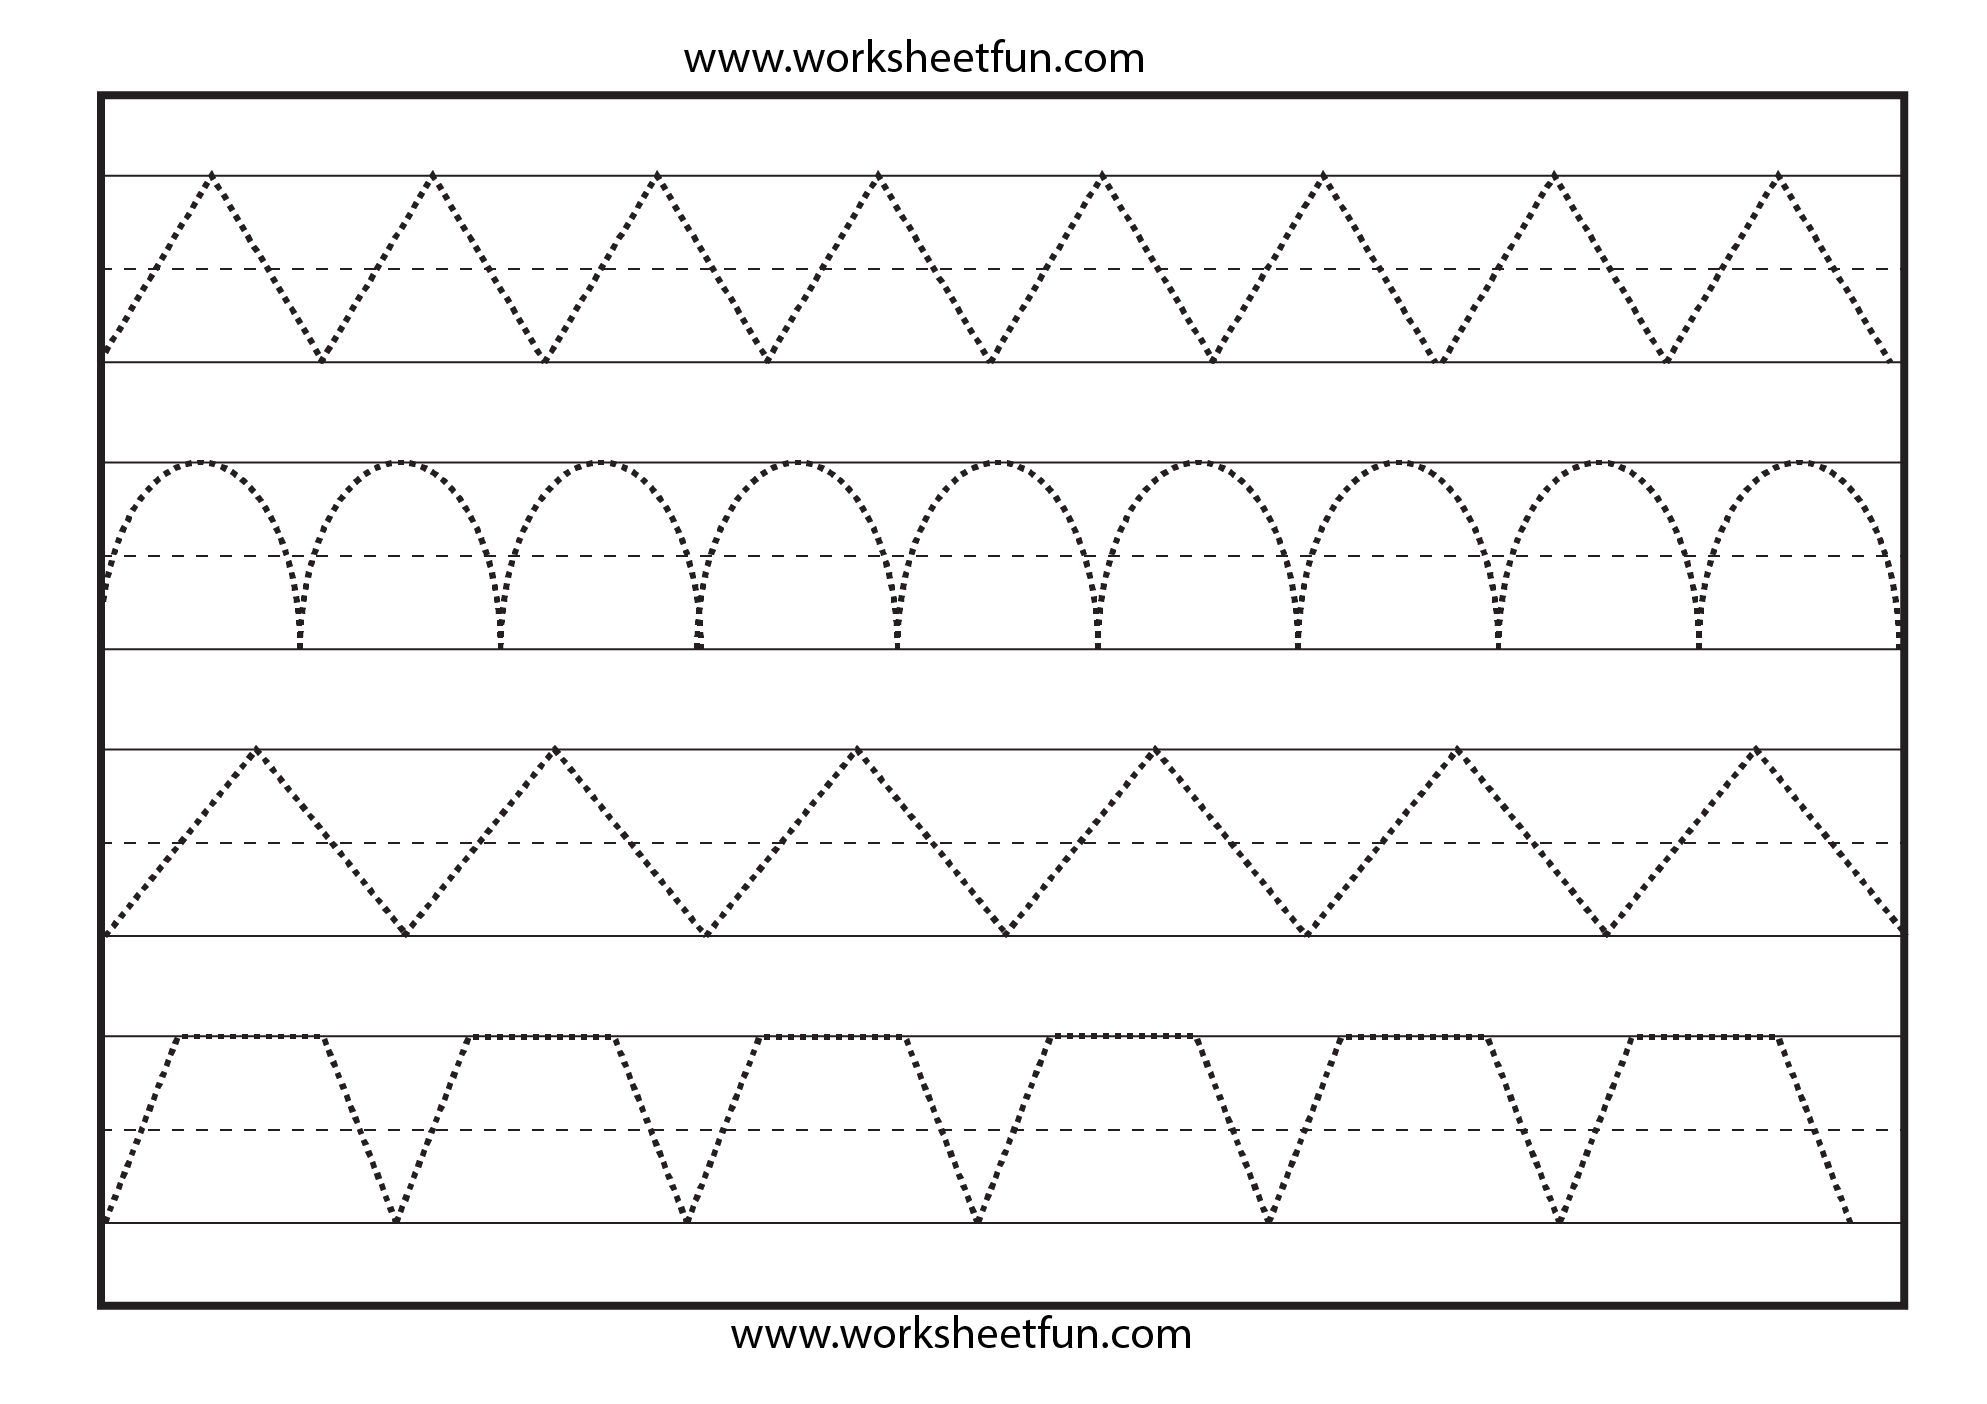 Worksheets Tracing Worksheets line tracing 1 worksheet free printable worksheets worksheetfun preschool tracing